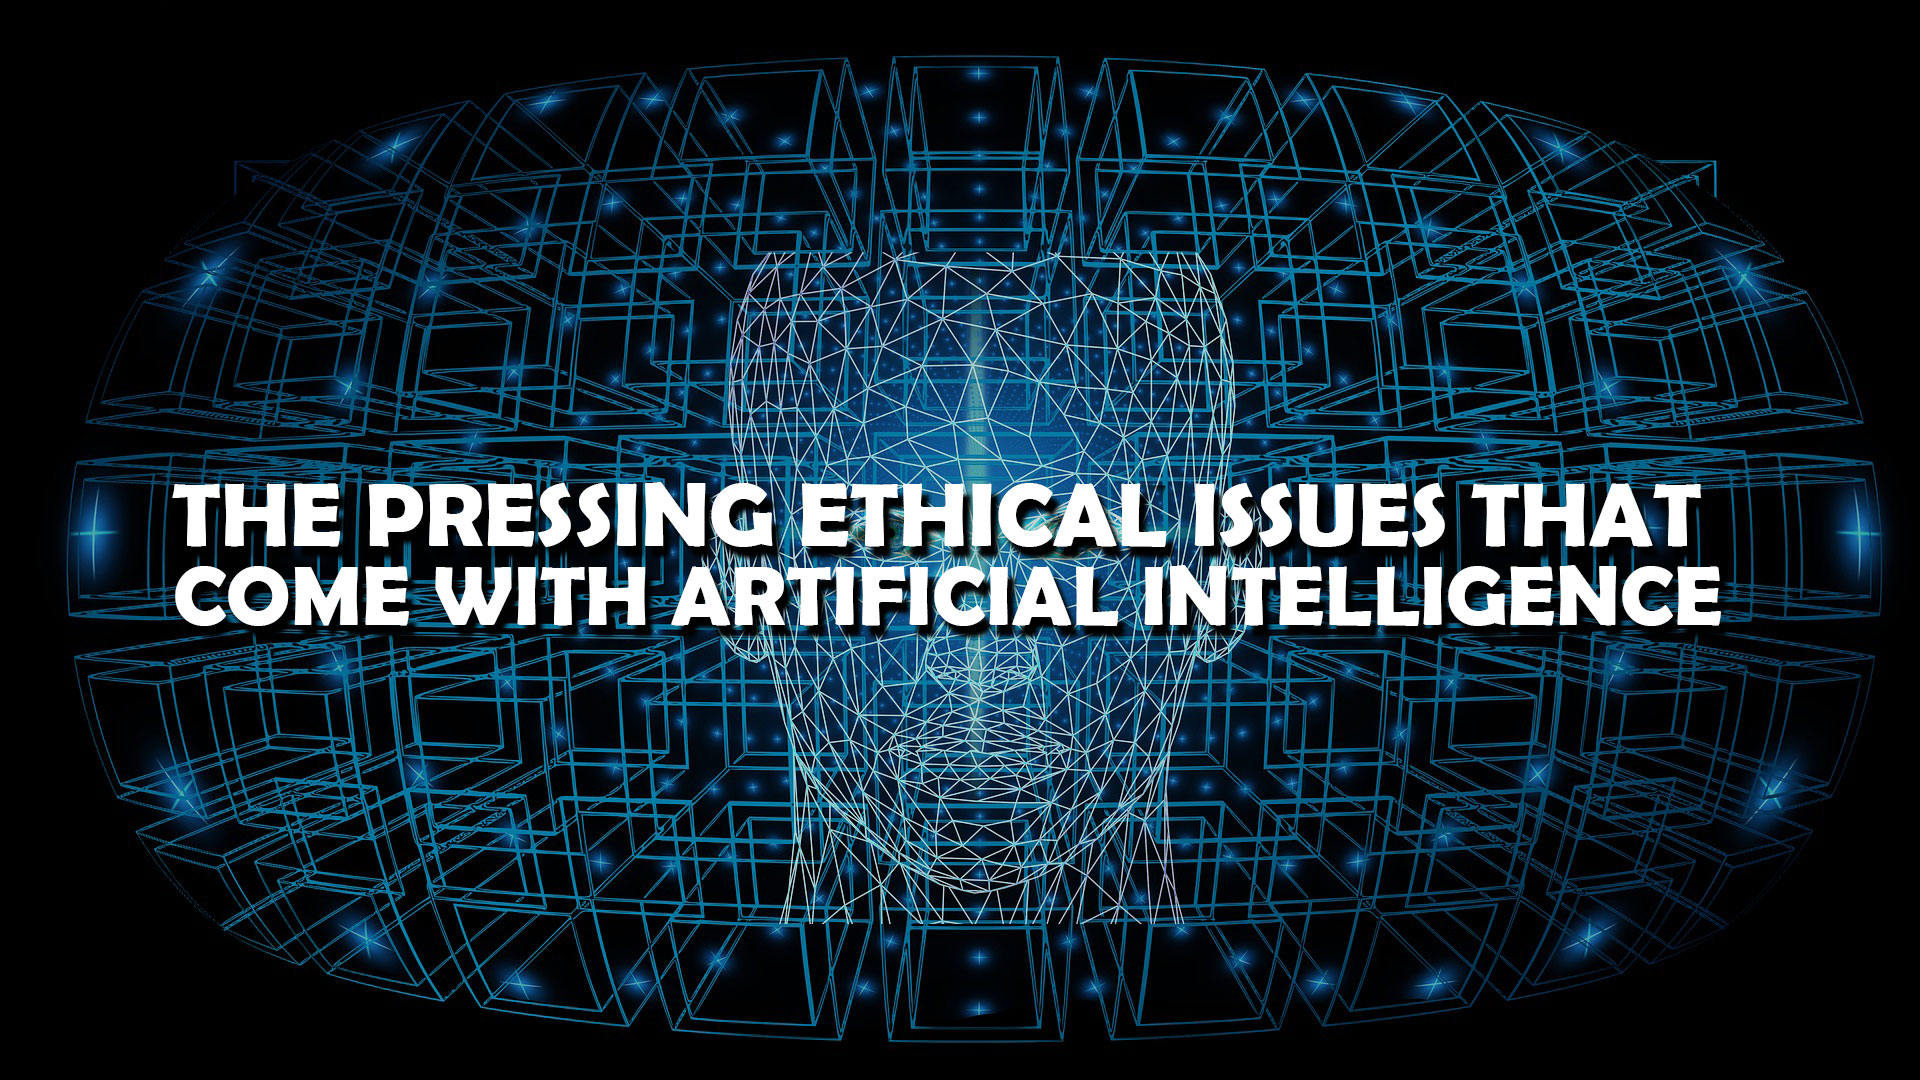 The Pressing Ethical Issues That Come with Artificial Intelligence